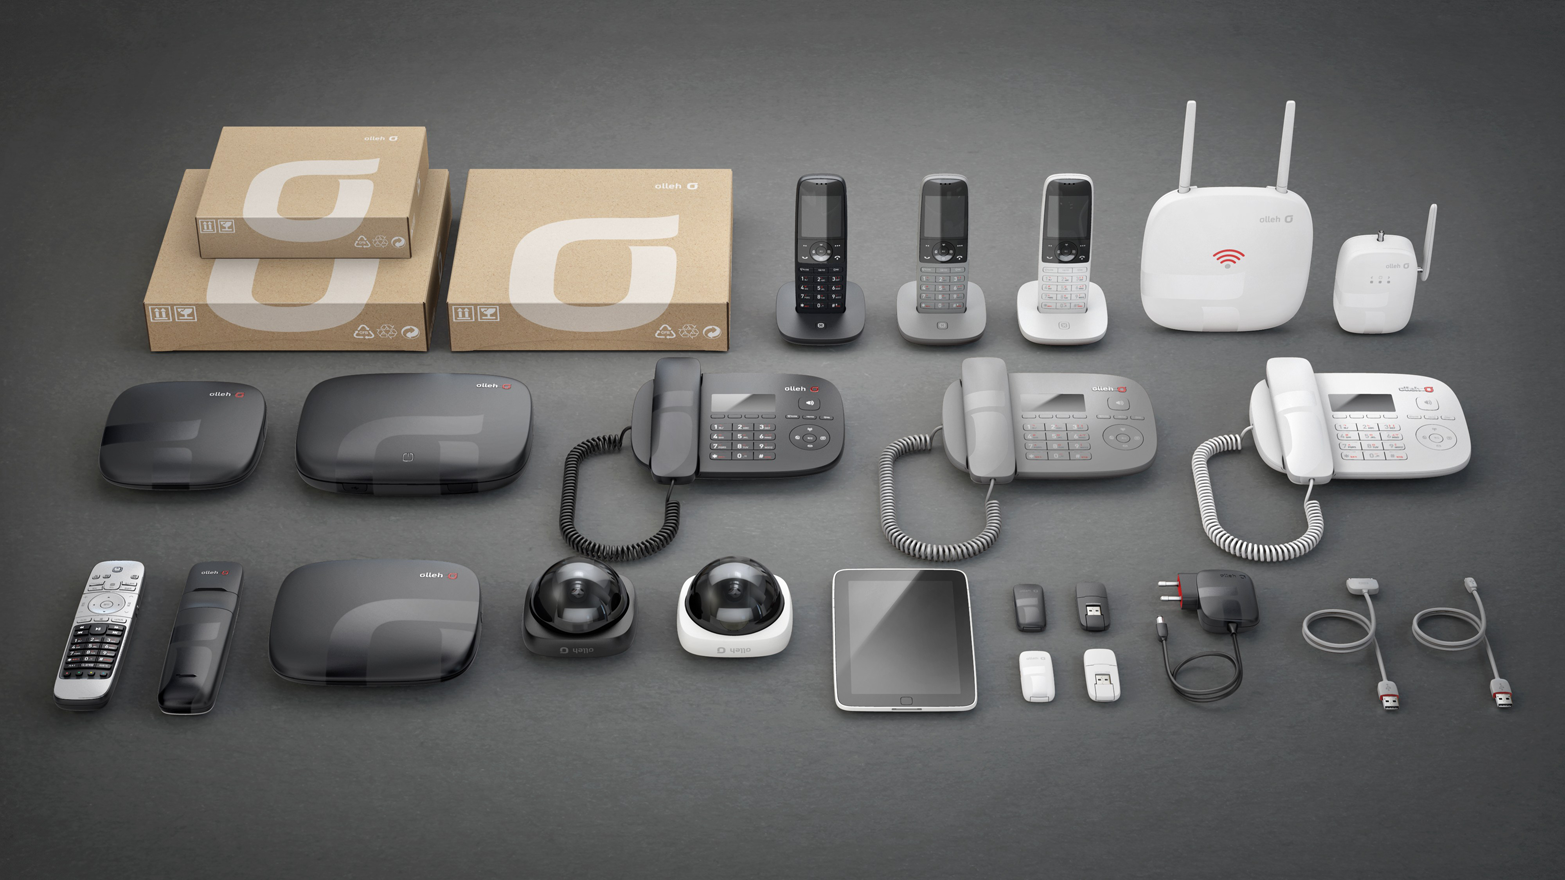 Korea Telecom range of products unified by a common design language (image: Seymourpowell).